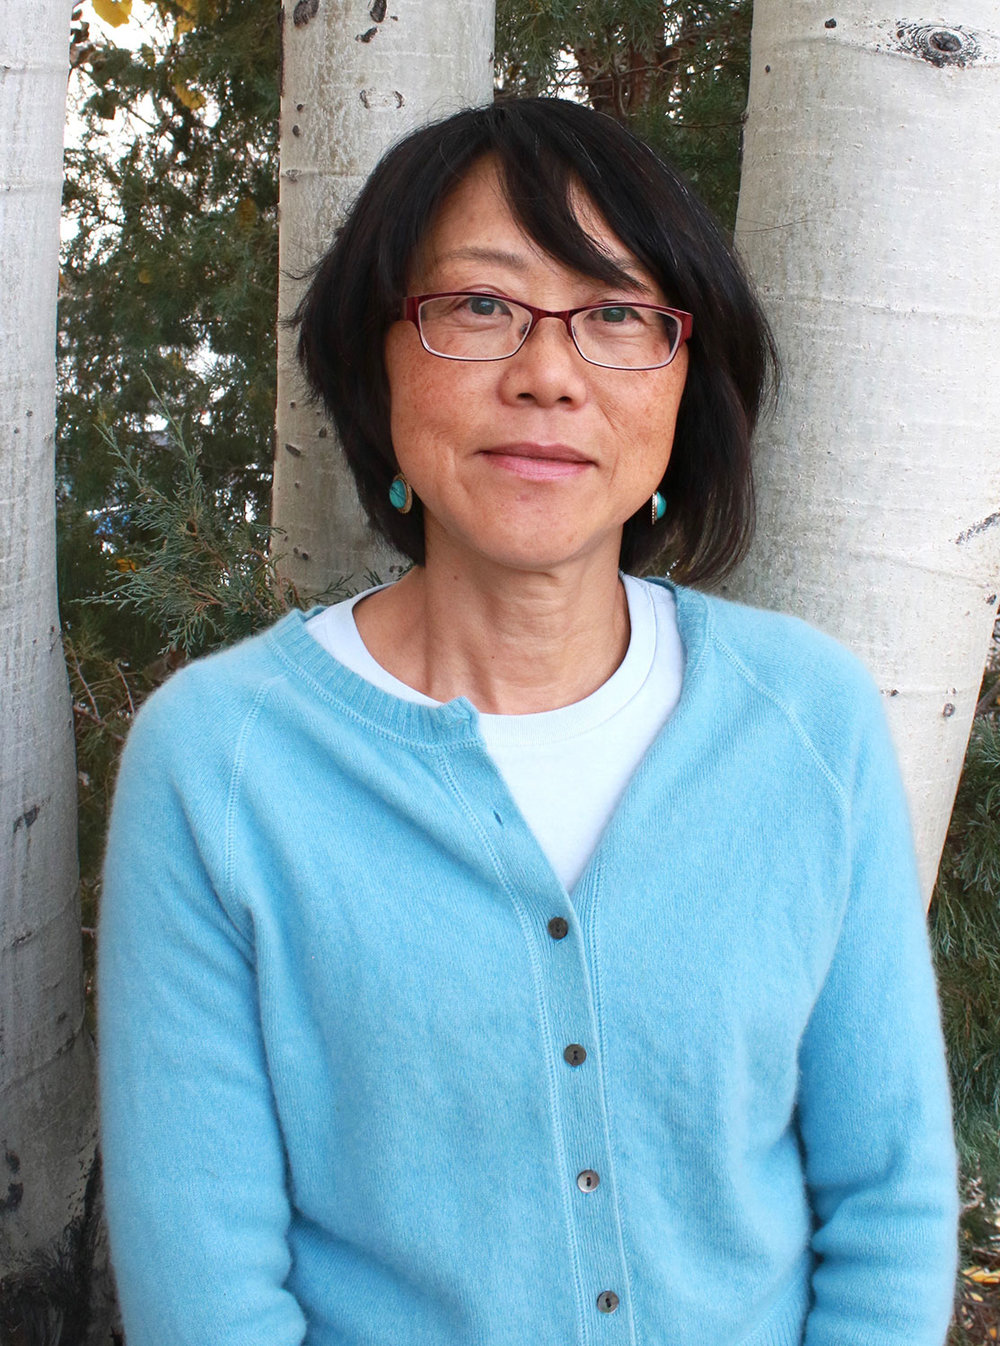 Taos Whole Health Integrative Care - Dr. Noriko Wilson, DOM, RN